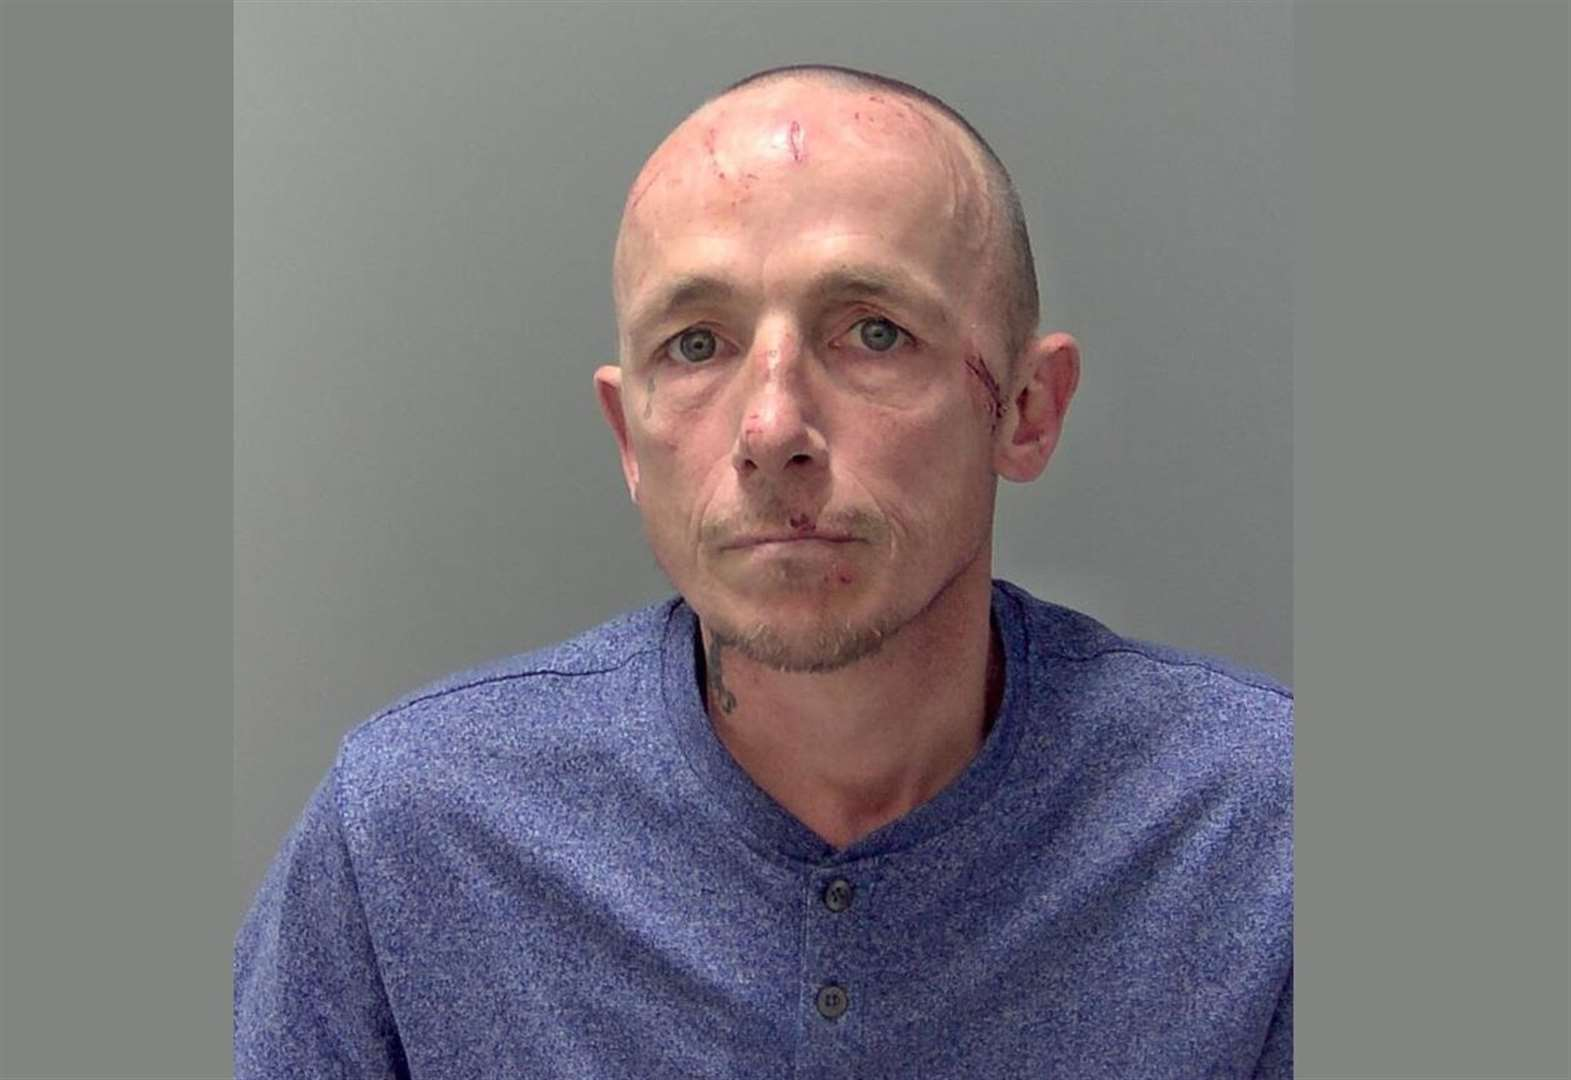 Man jailed for 18 months after pleading guilty to crime spree